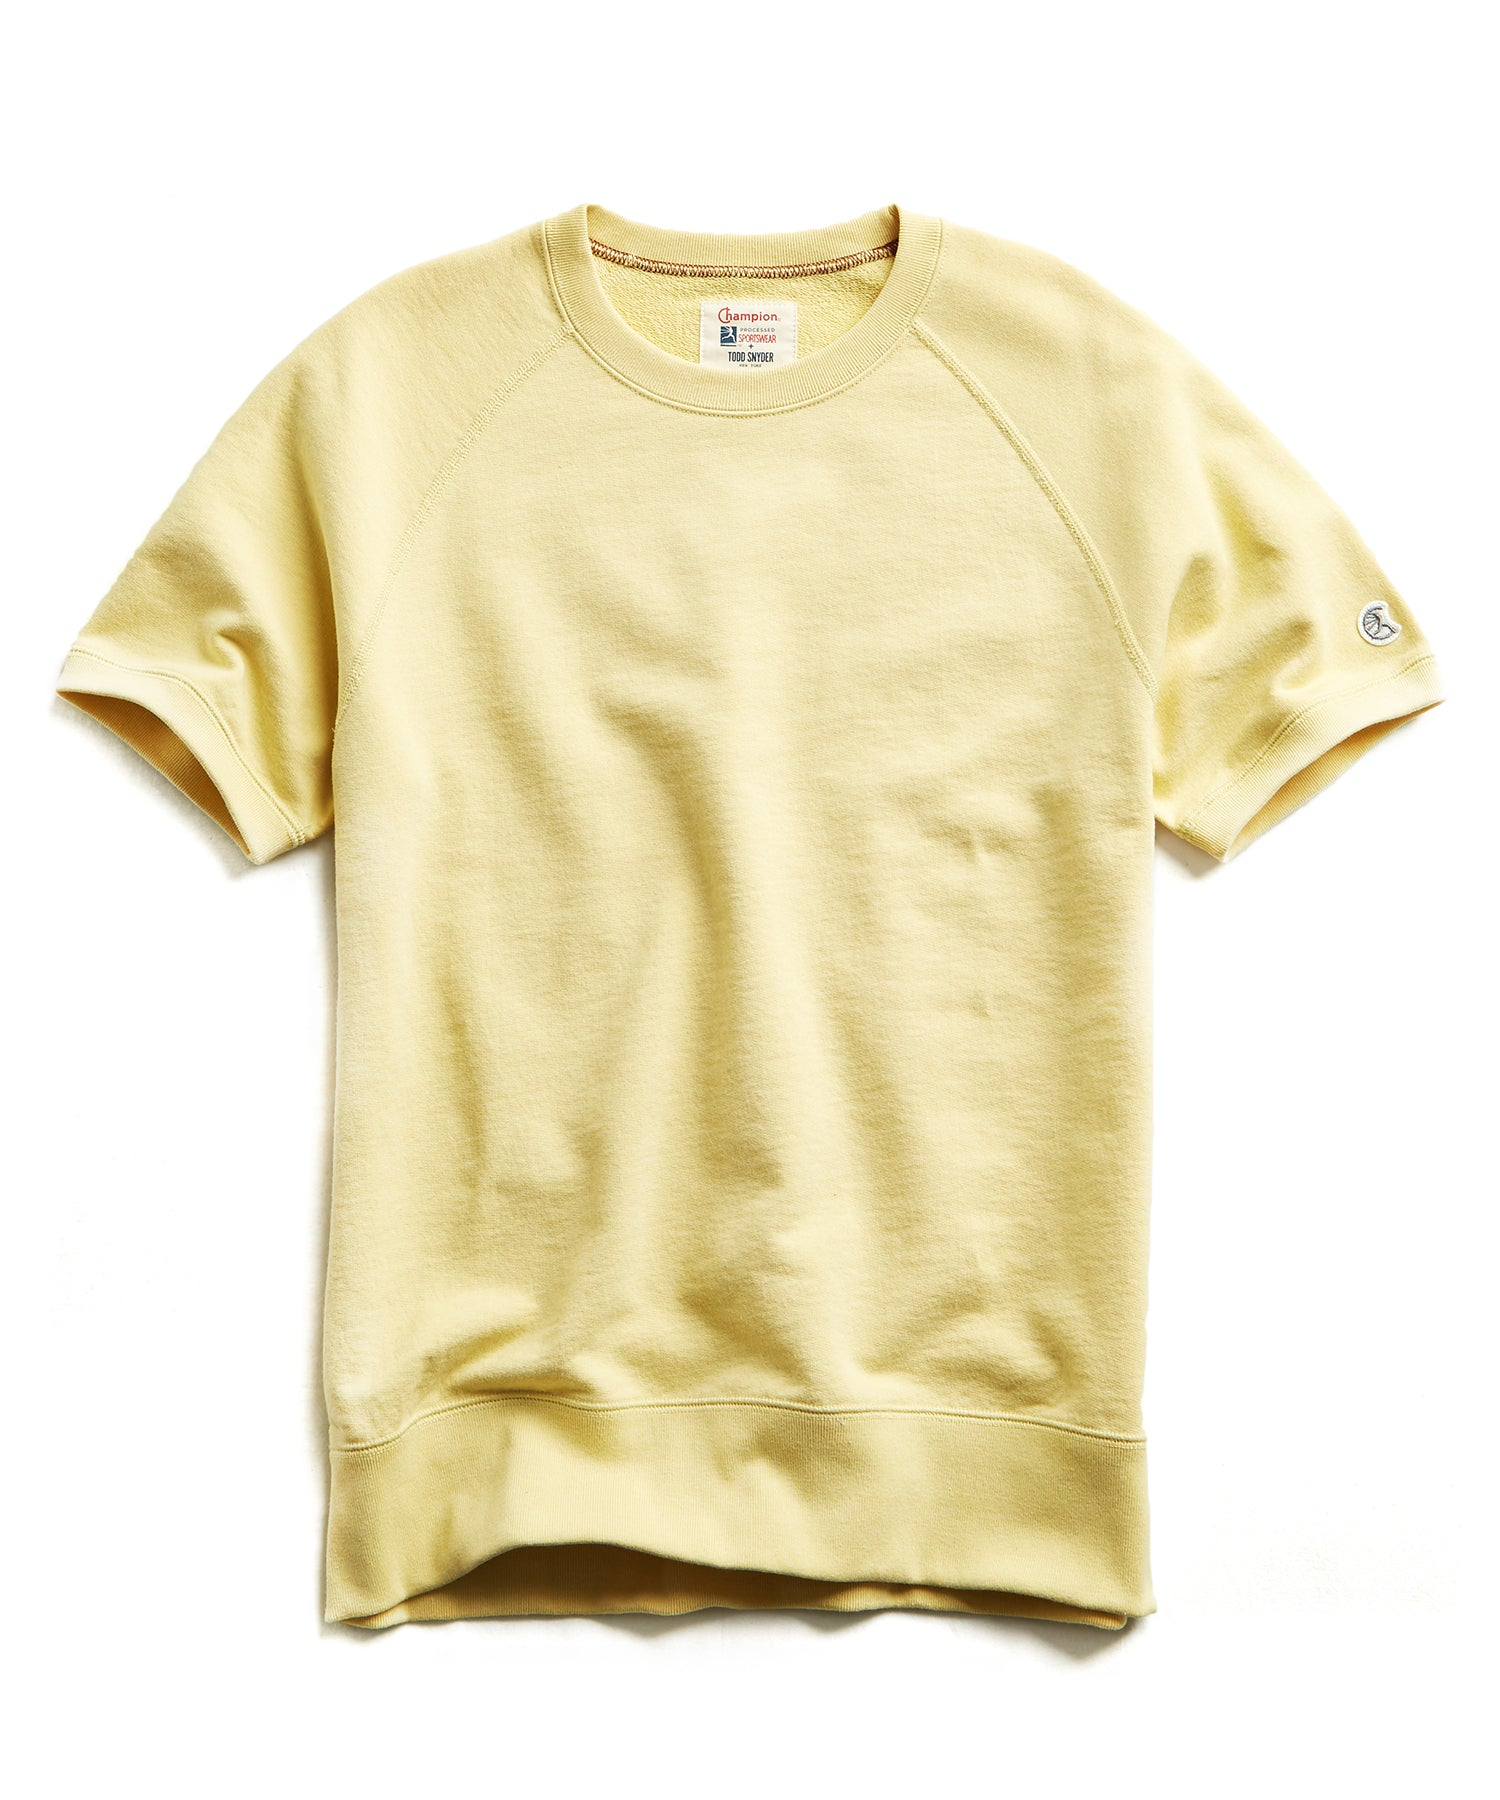 Terry Short Sleeve Sweatshirt in Fresh Lemon